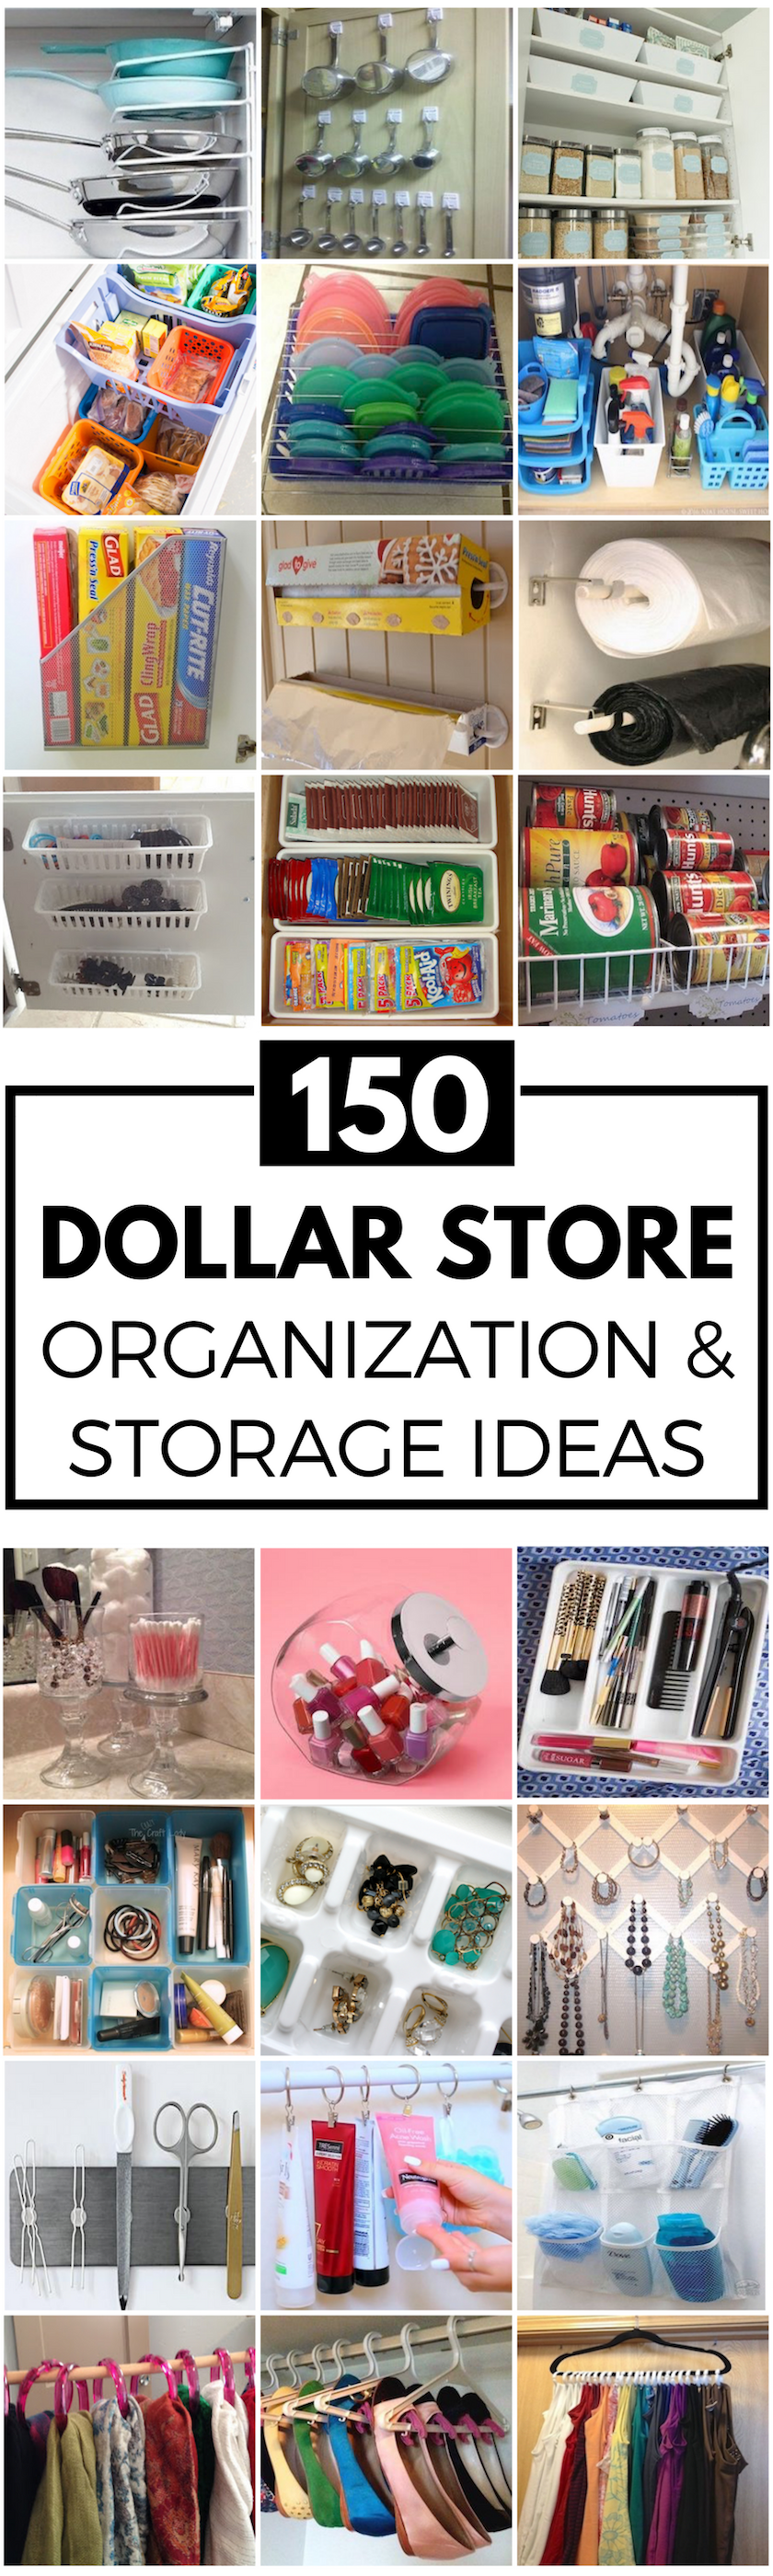 Organize For Less With These Creative Dollar Store Organization And Storage Ideas There Are Every Room In Your House Kitchen Bathroom Laundry